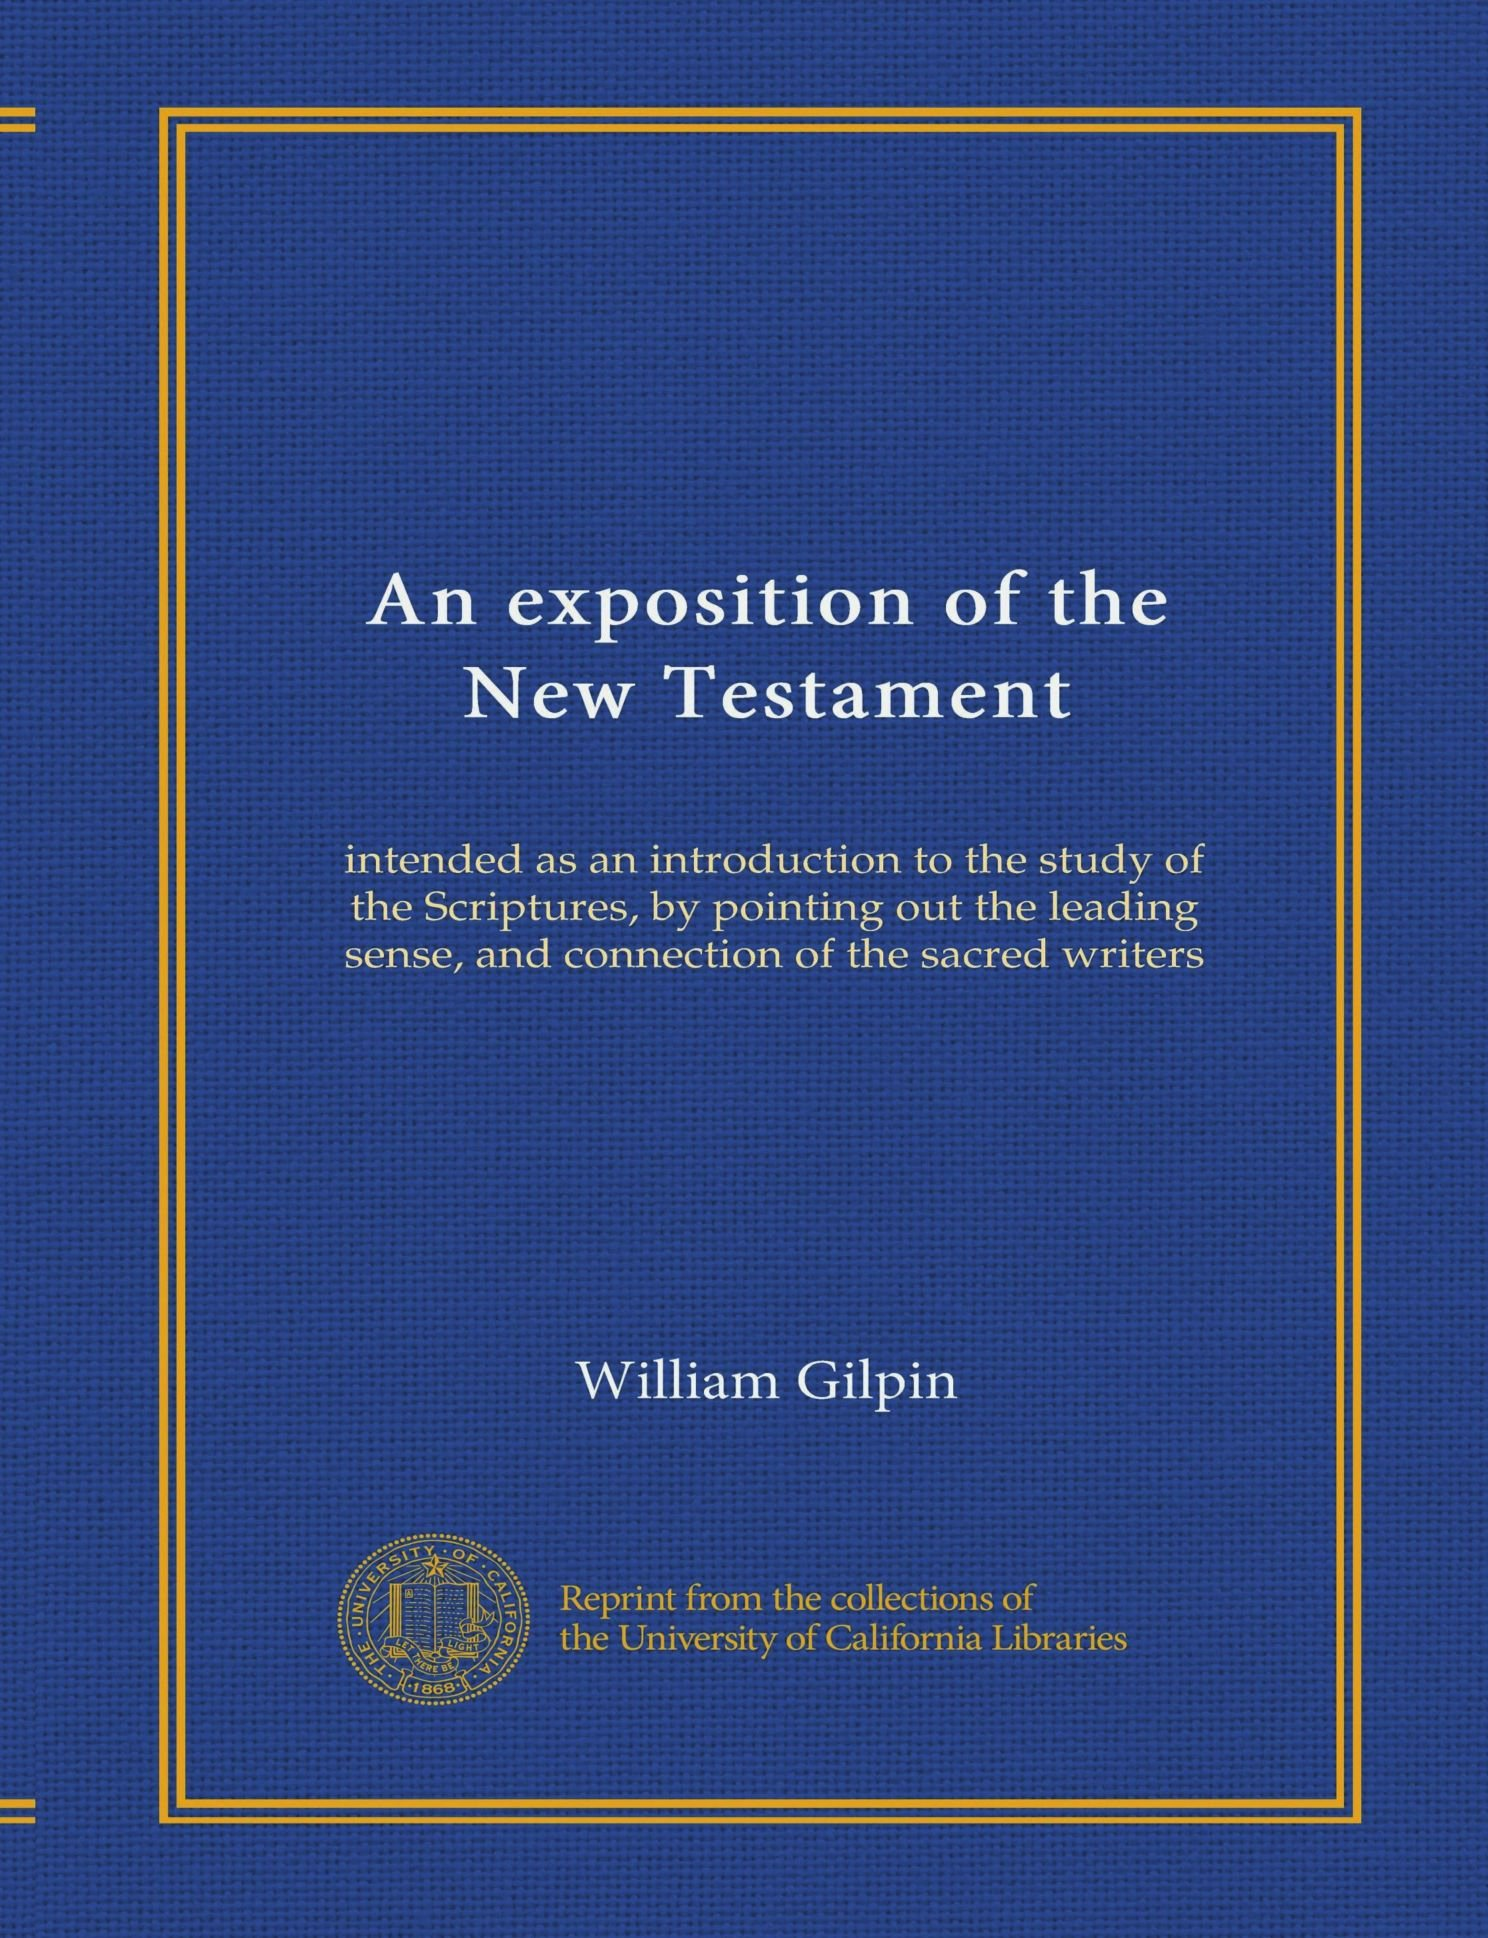 Read Online An exposition of the New Testament: intended as an introduction to the study of the Scriptures, by pointing out the leading sense, and connection of the sacred writers PDF